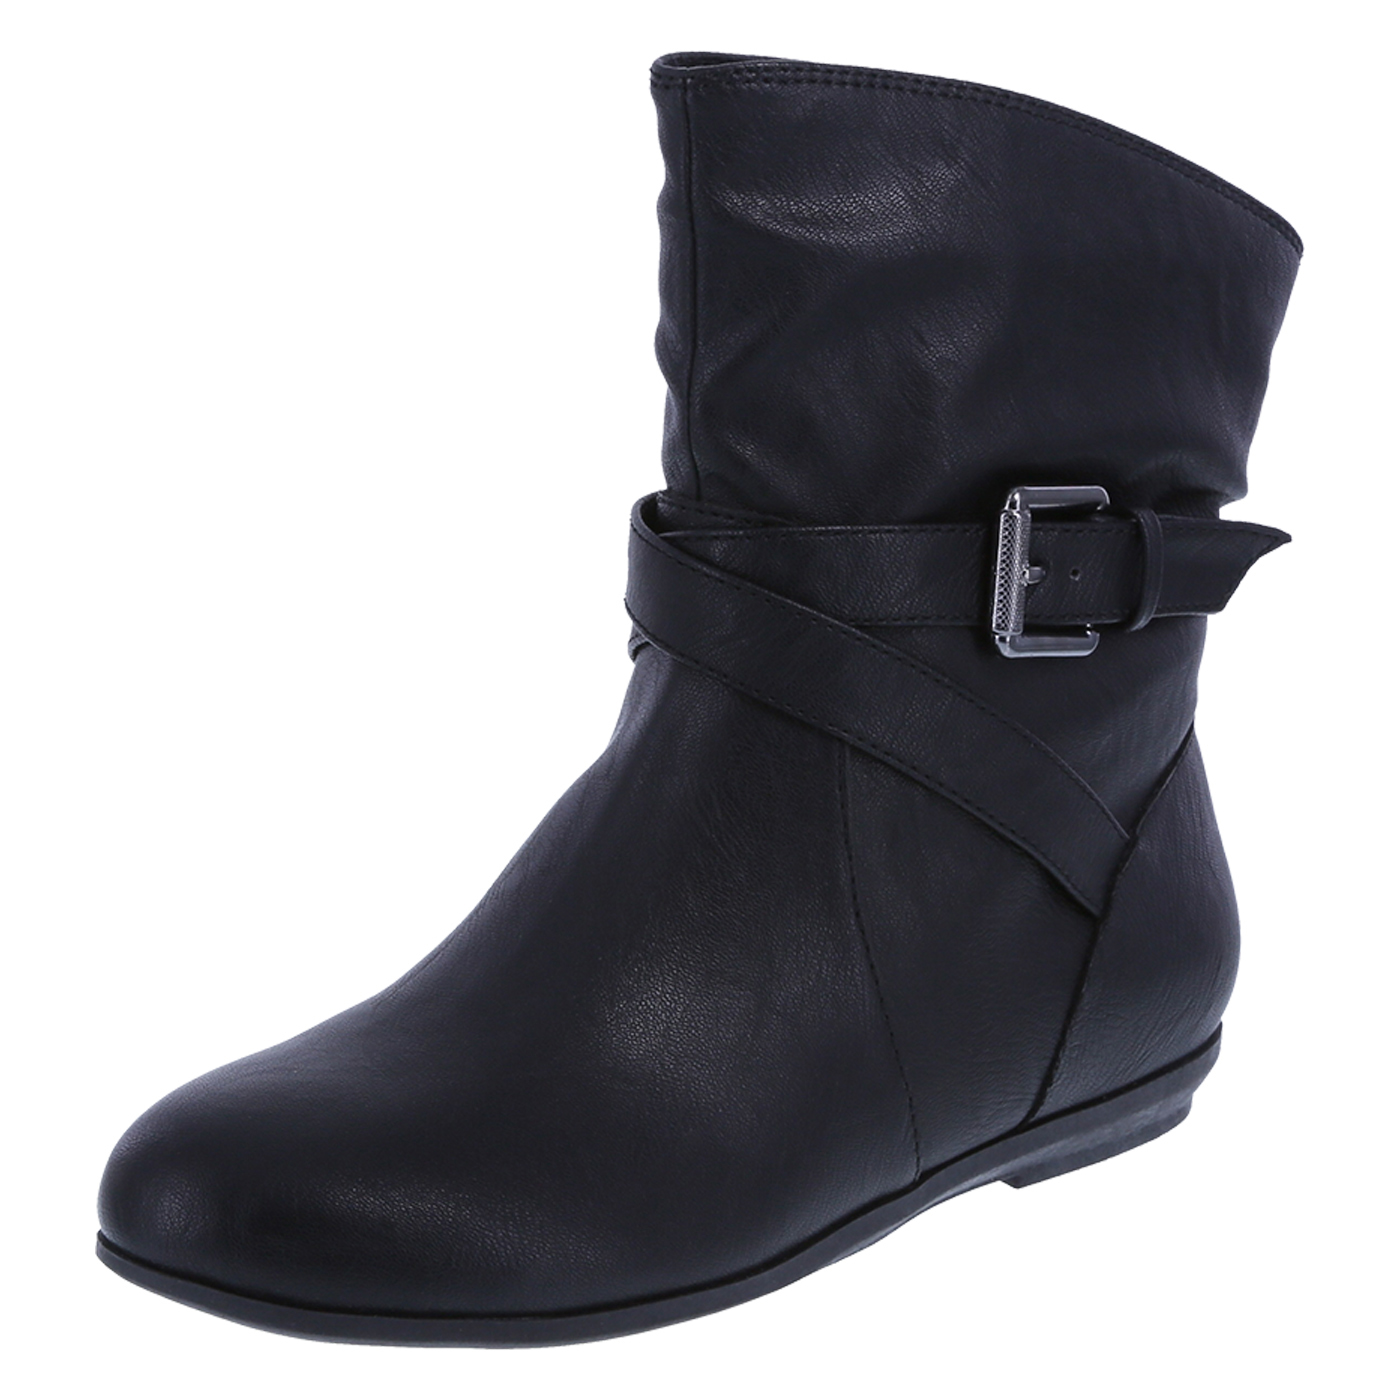 womens ankle boots womenu0027s meadows ankle boot, black, hi-res HIQZFGR